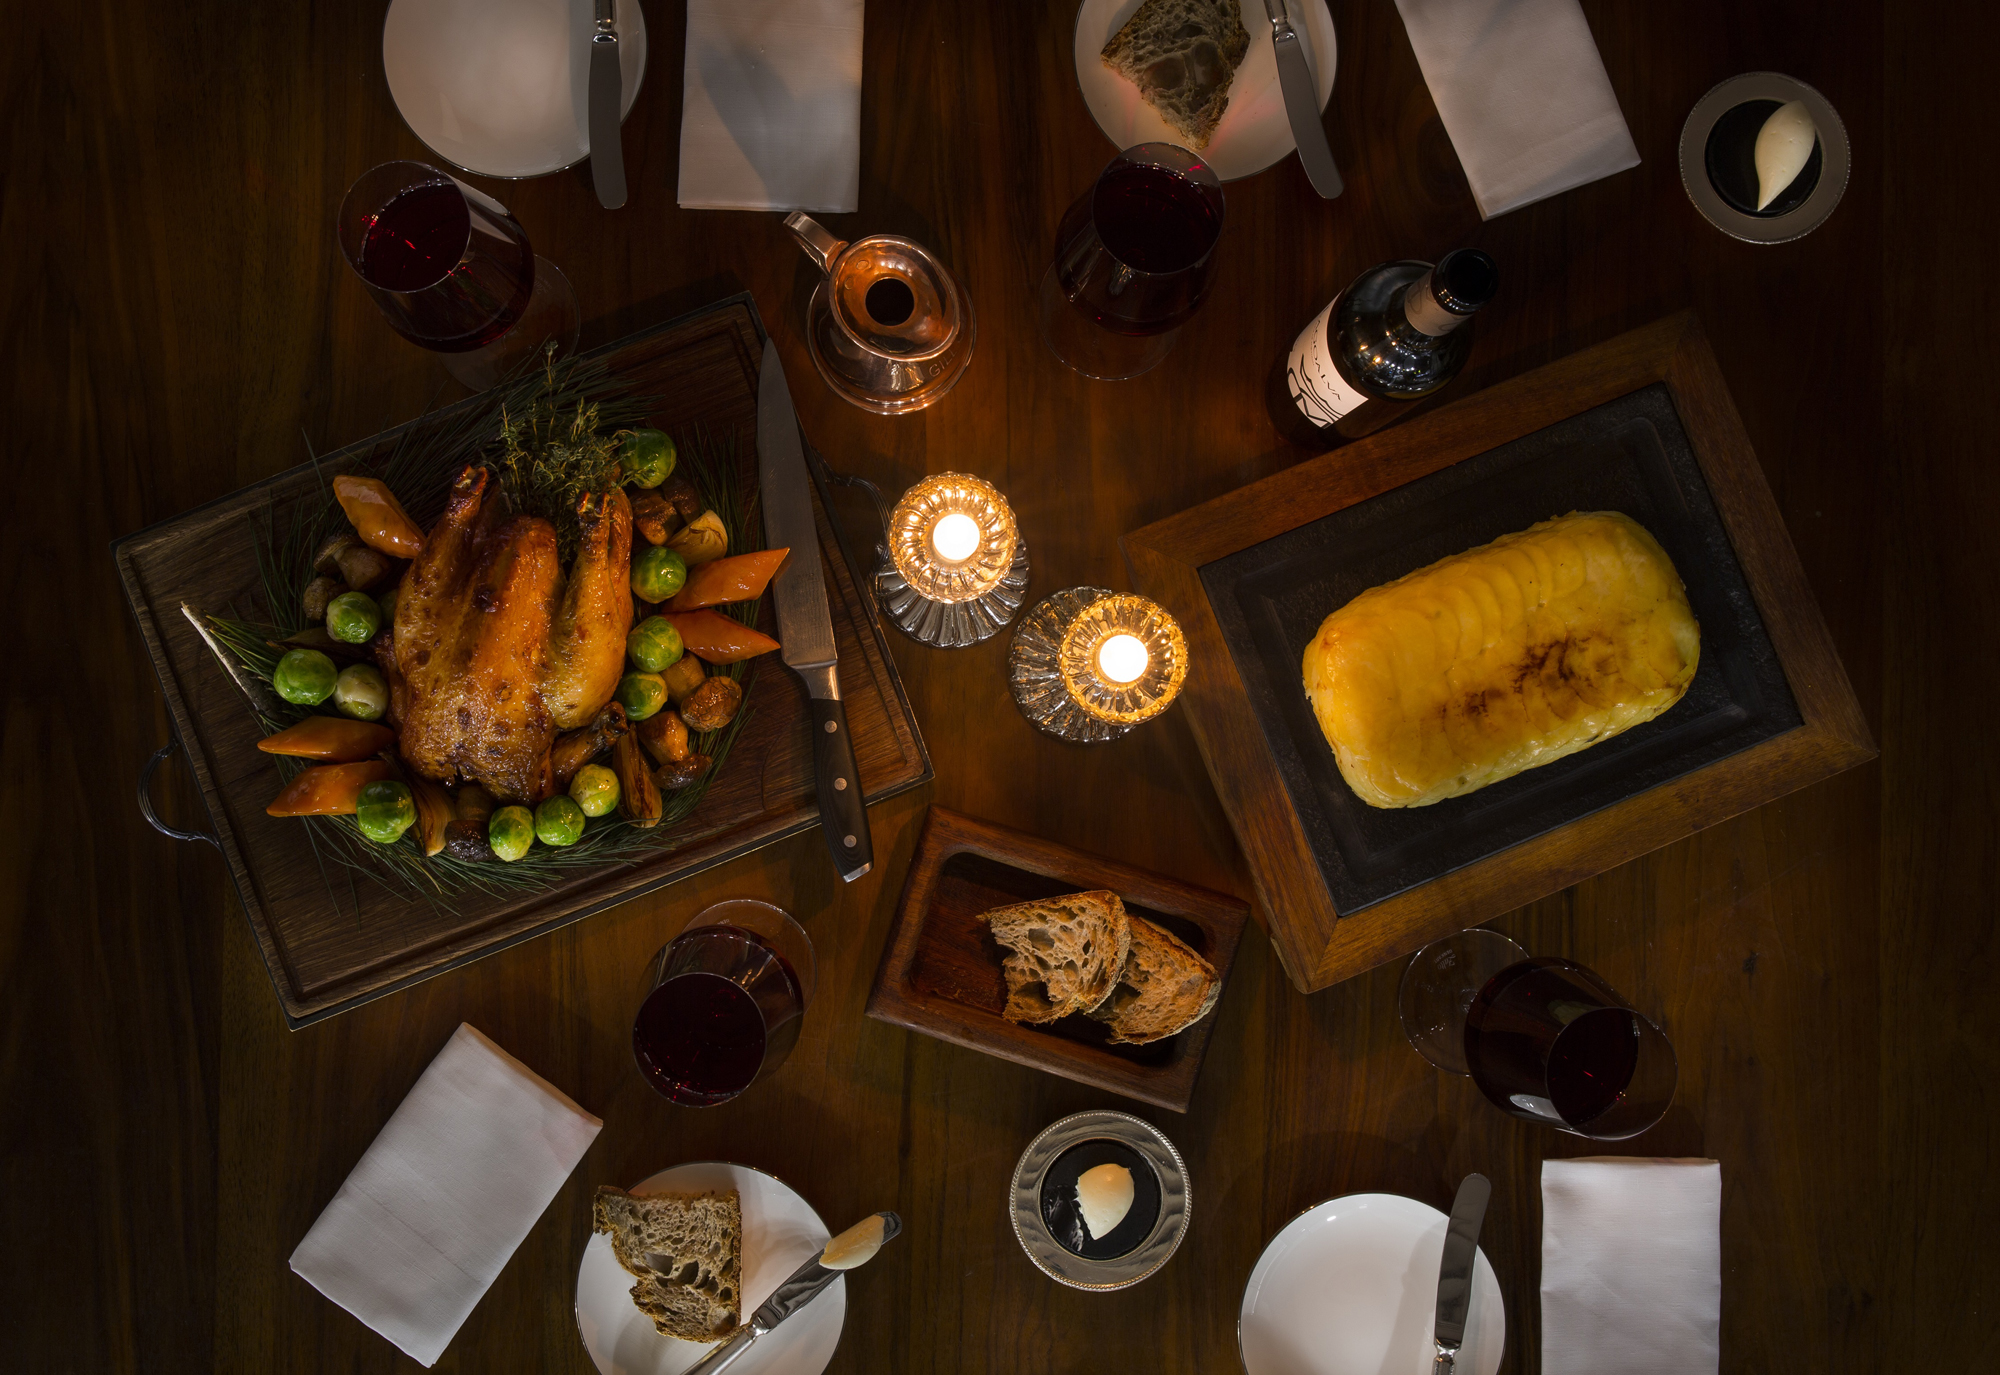 Petrus launches Christmas private dining menu michelin starred restaurants in london foodie festive feast